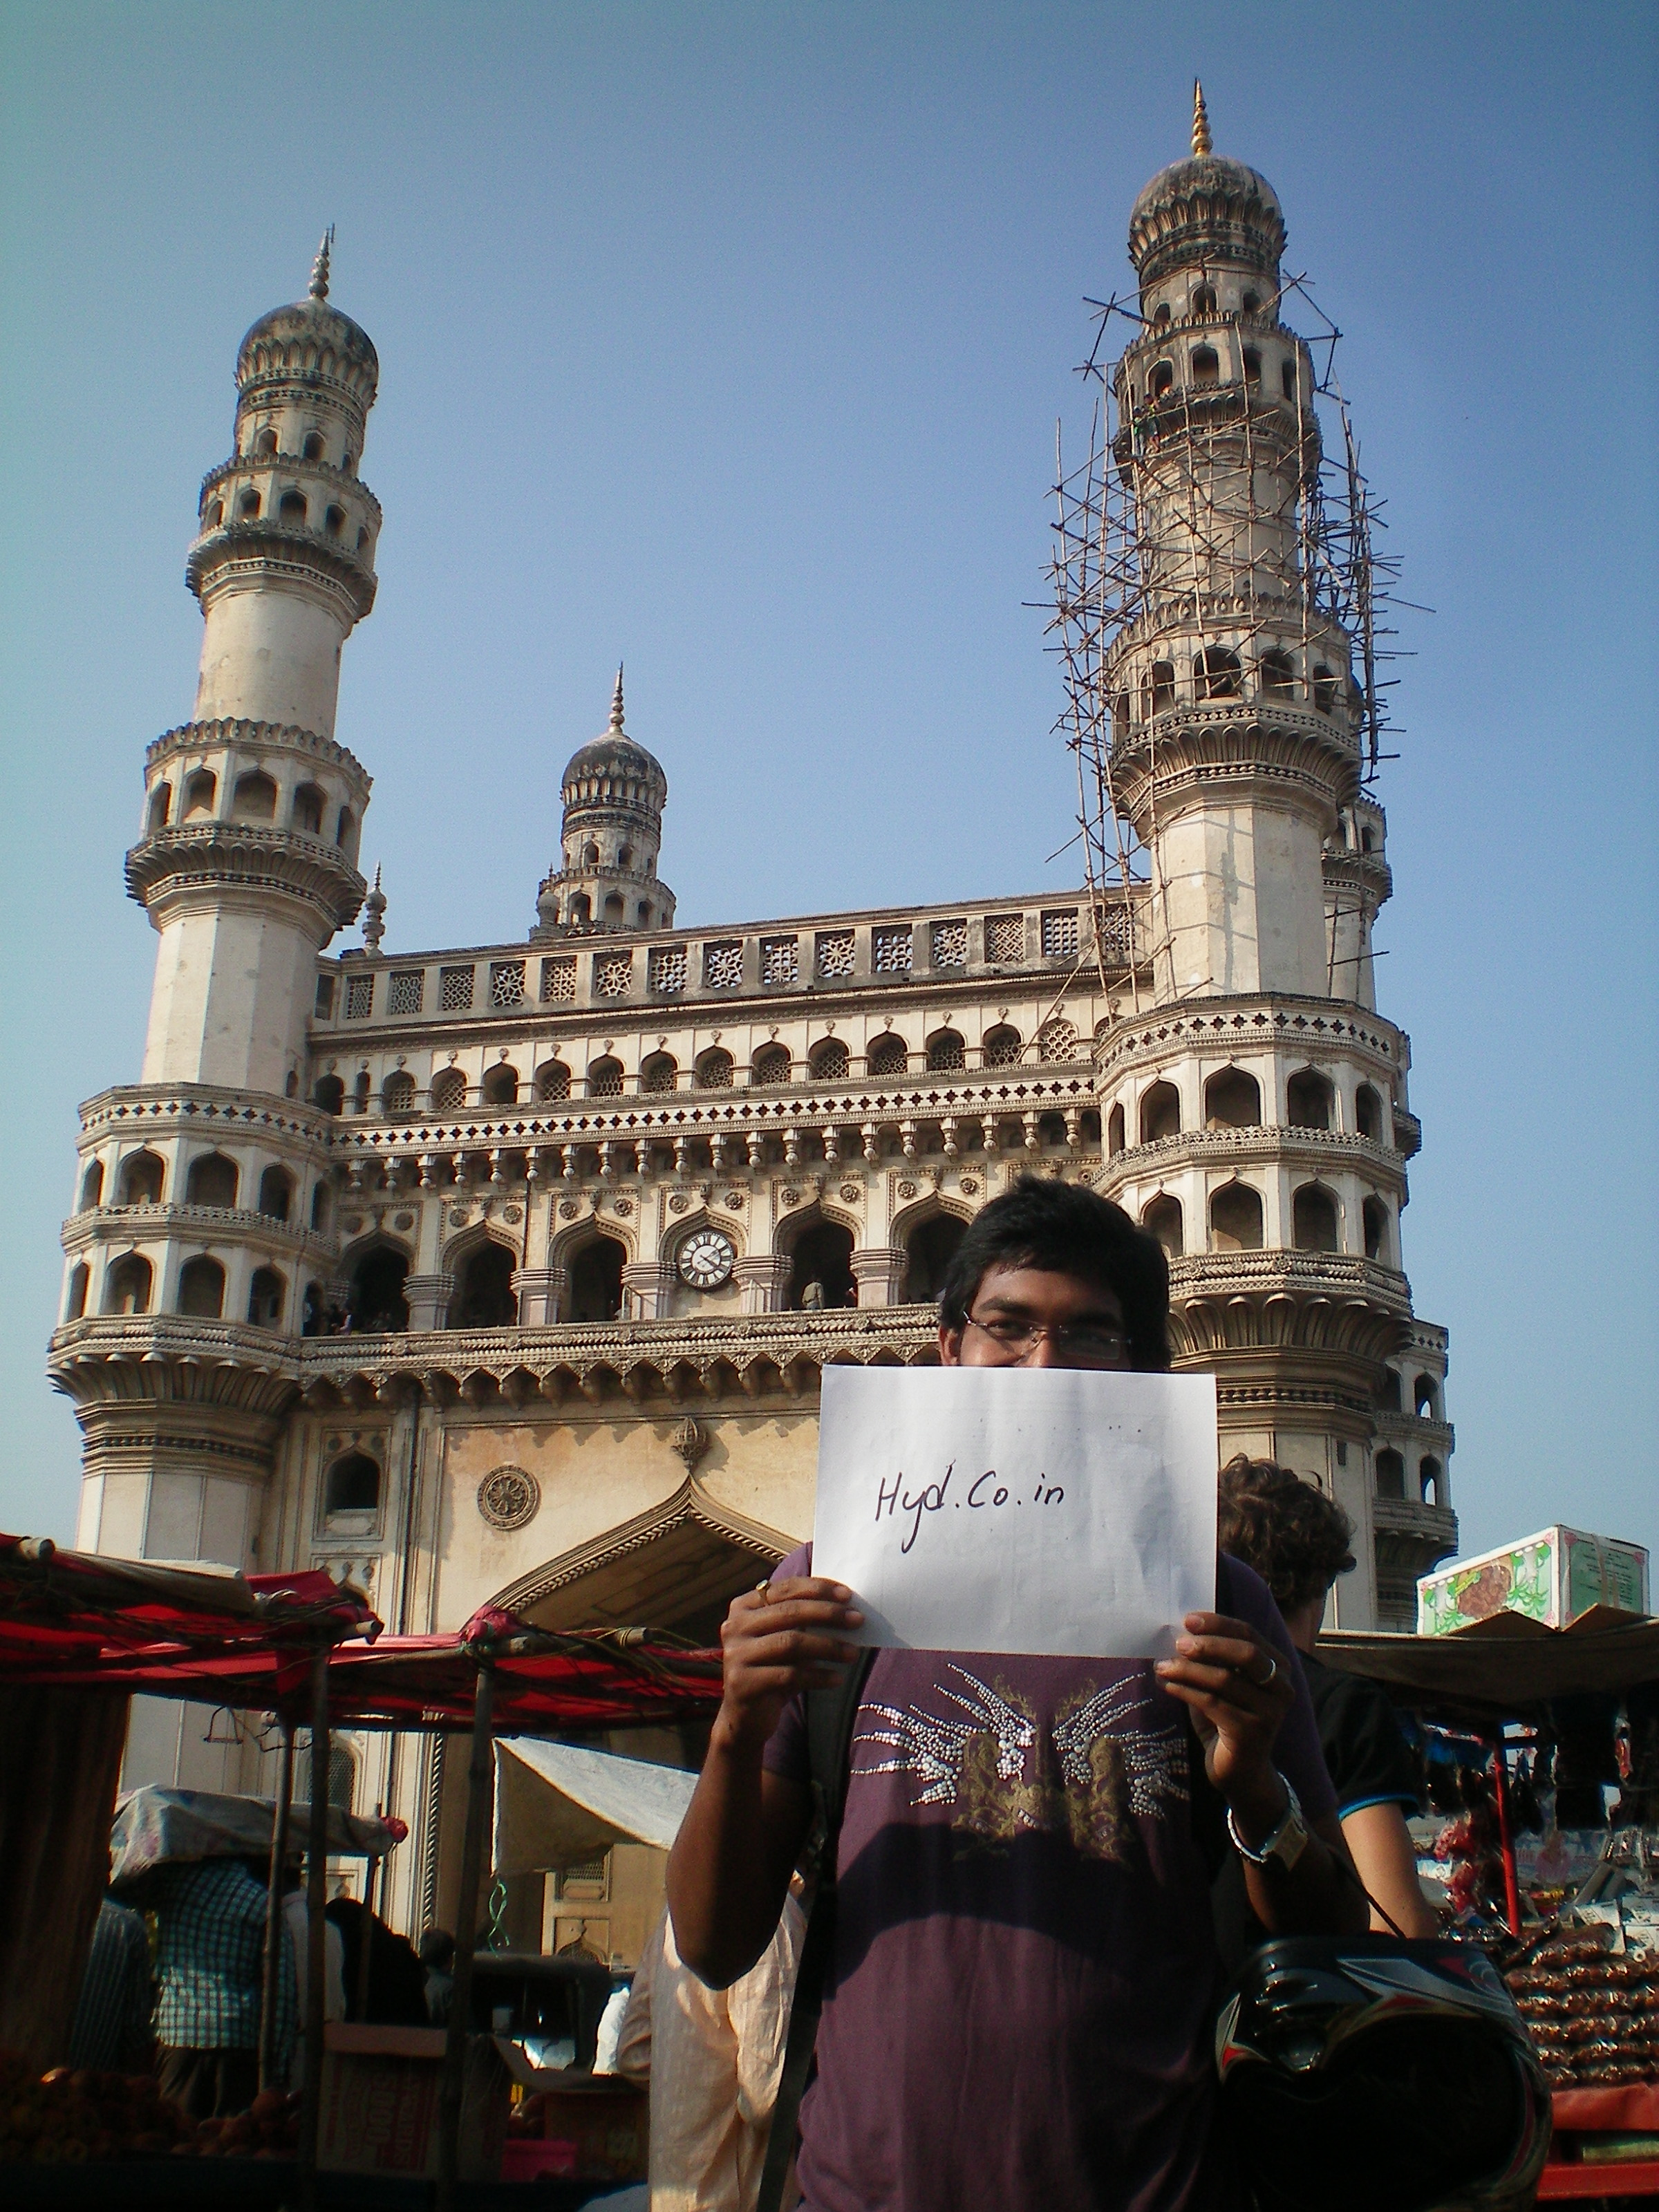 information on charminar The charminar stands at the heart of hyderabad's main bazaar area (also known as charminar), a labyrinth of lanes crowded with shops, stalls, markets and shoppers.